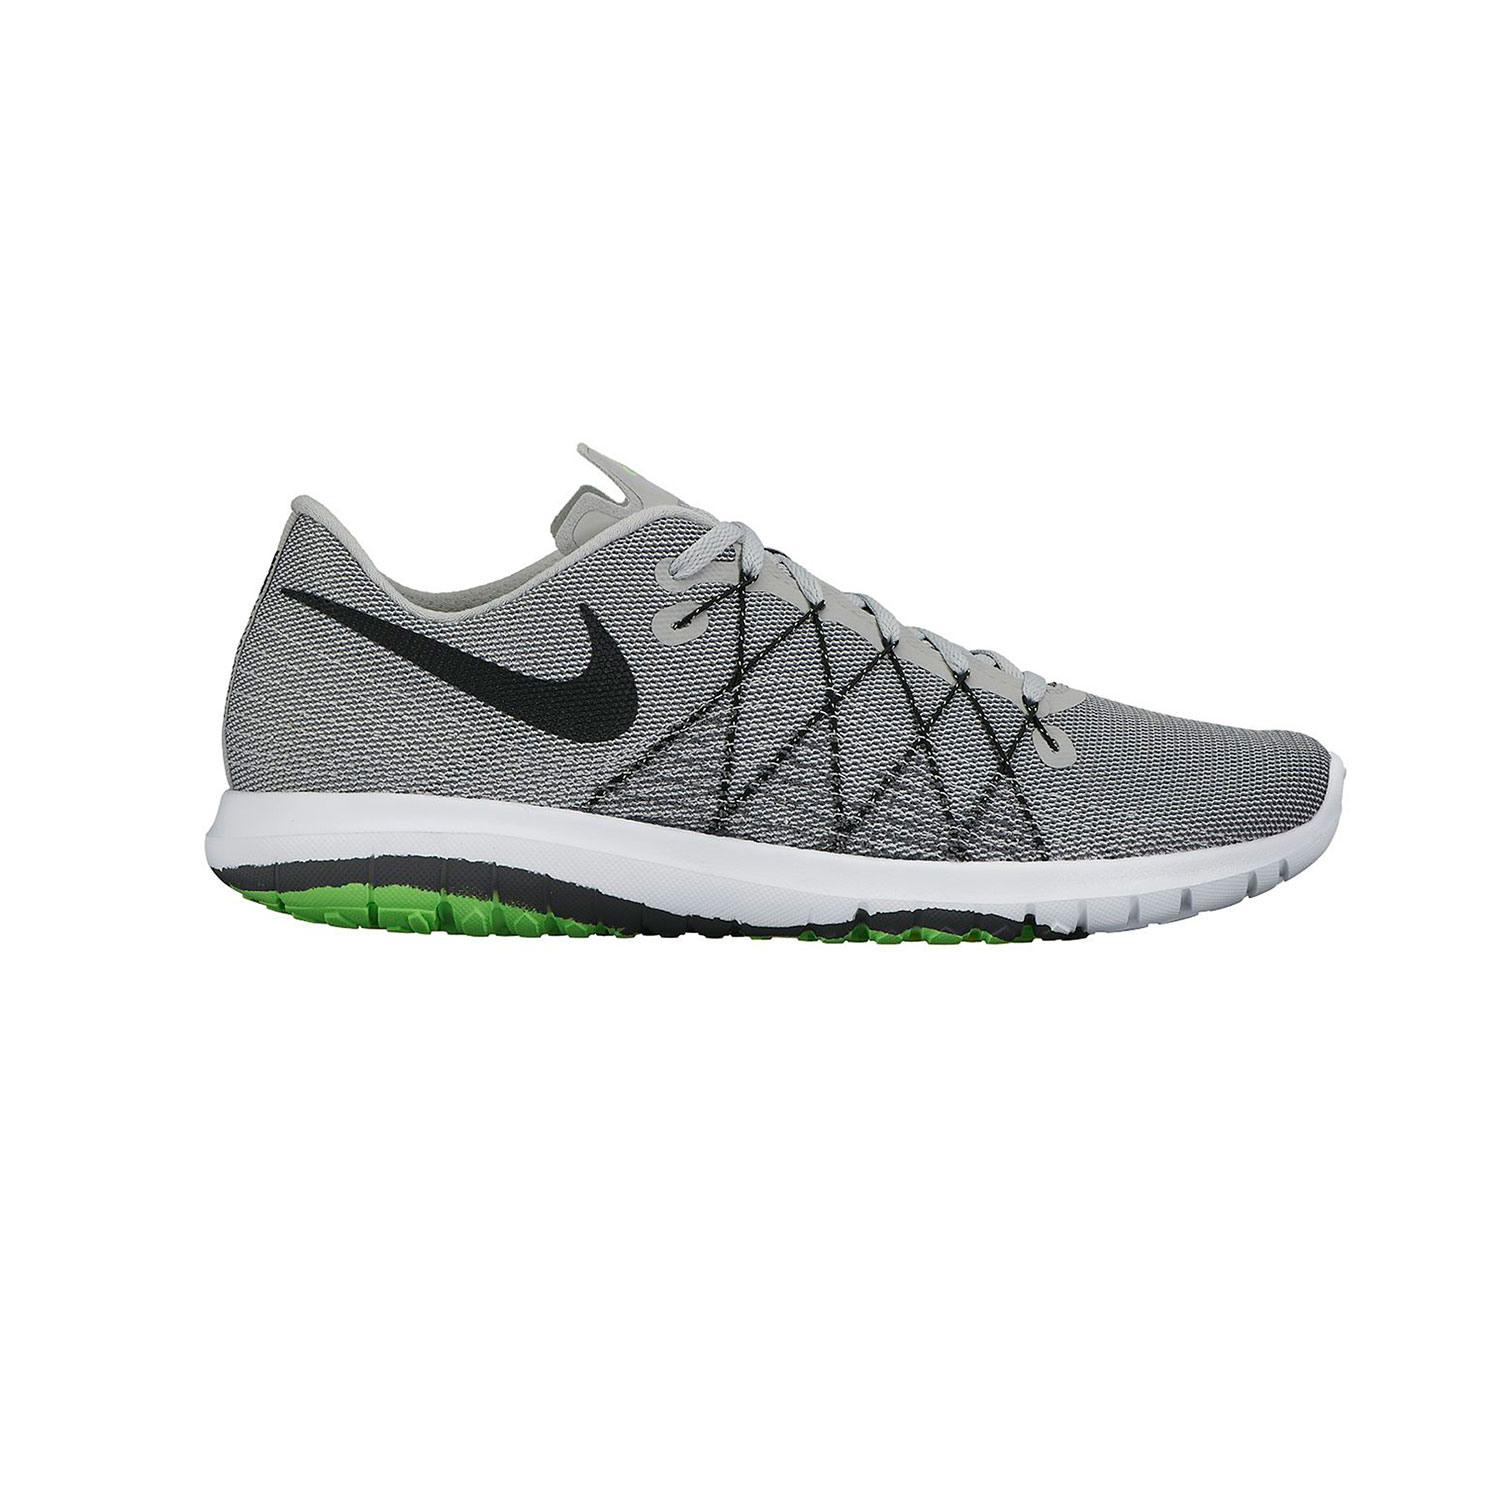 Nike Flex Fury 2 Running Shoe 5287a68ff7fe